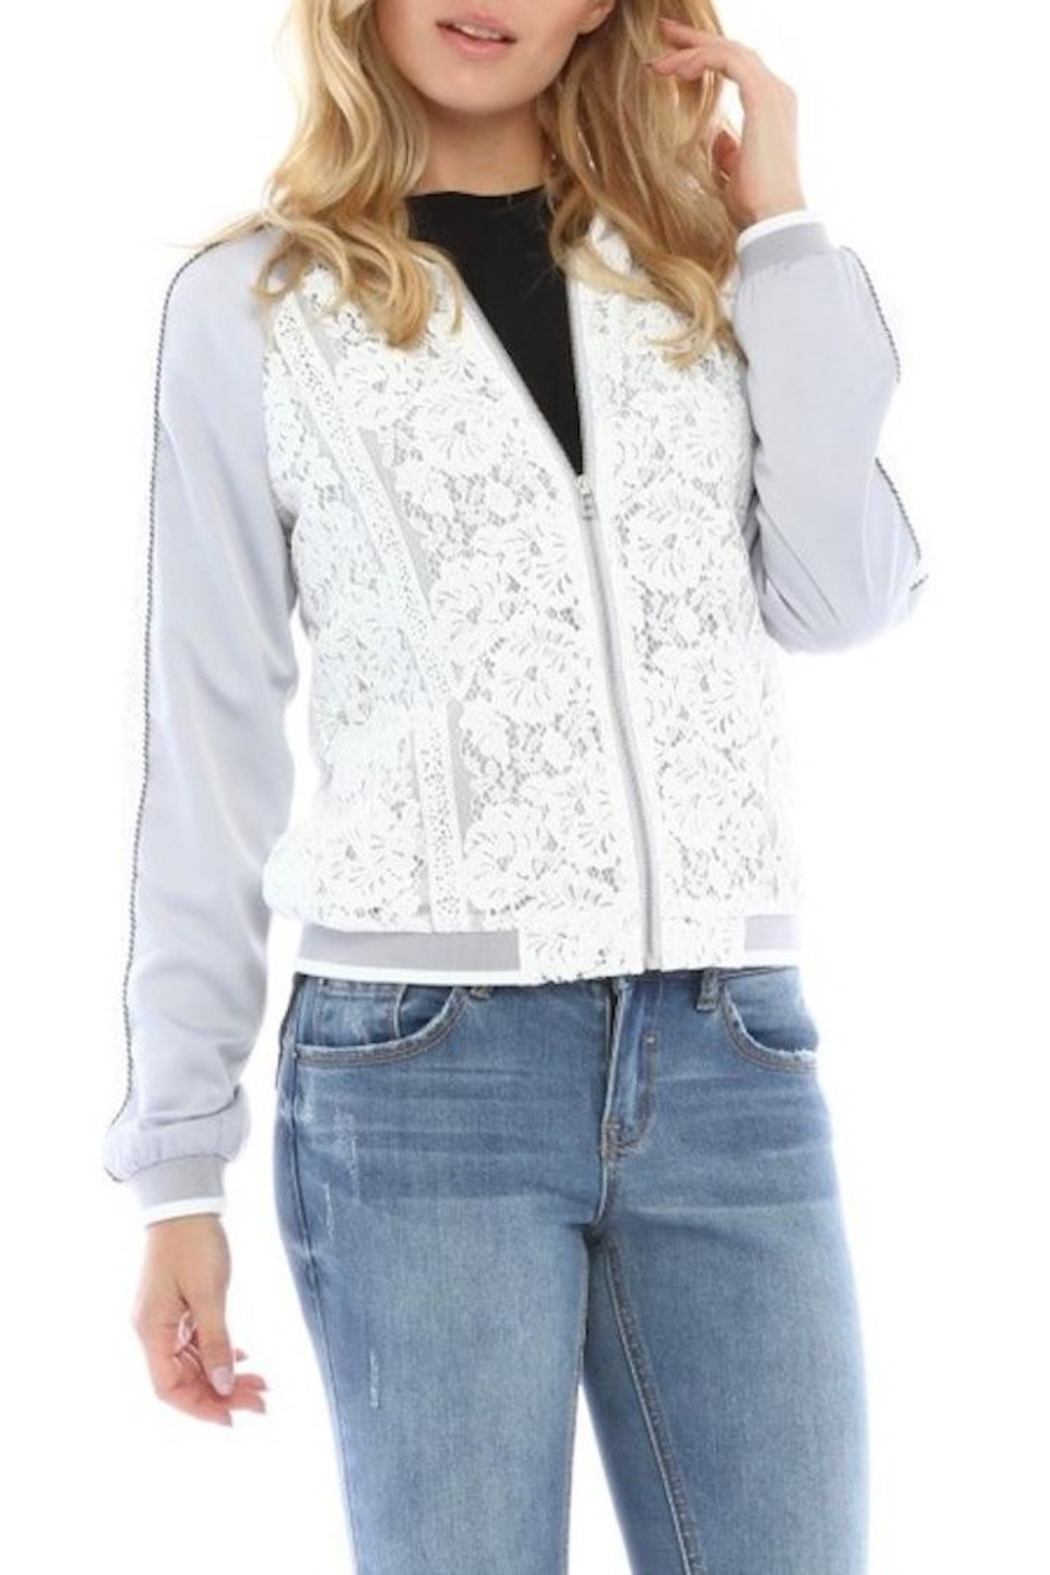 Current Air Lace Bomber Jacket - Main Image